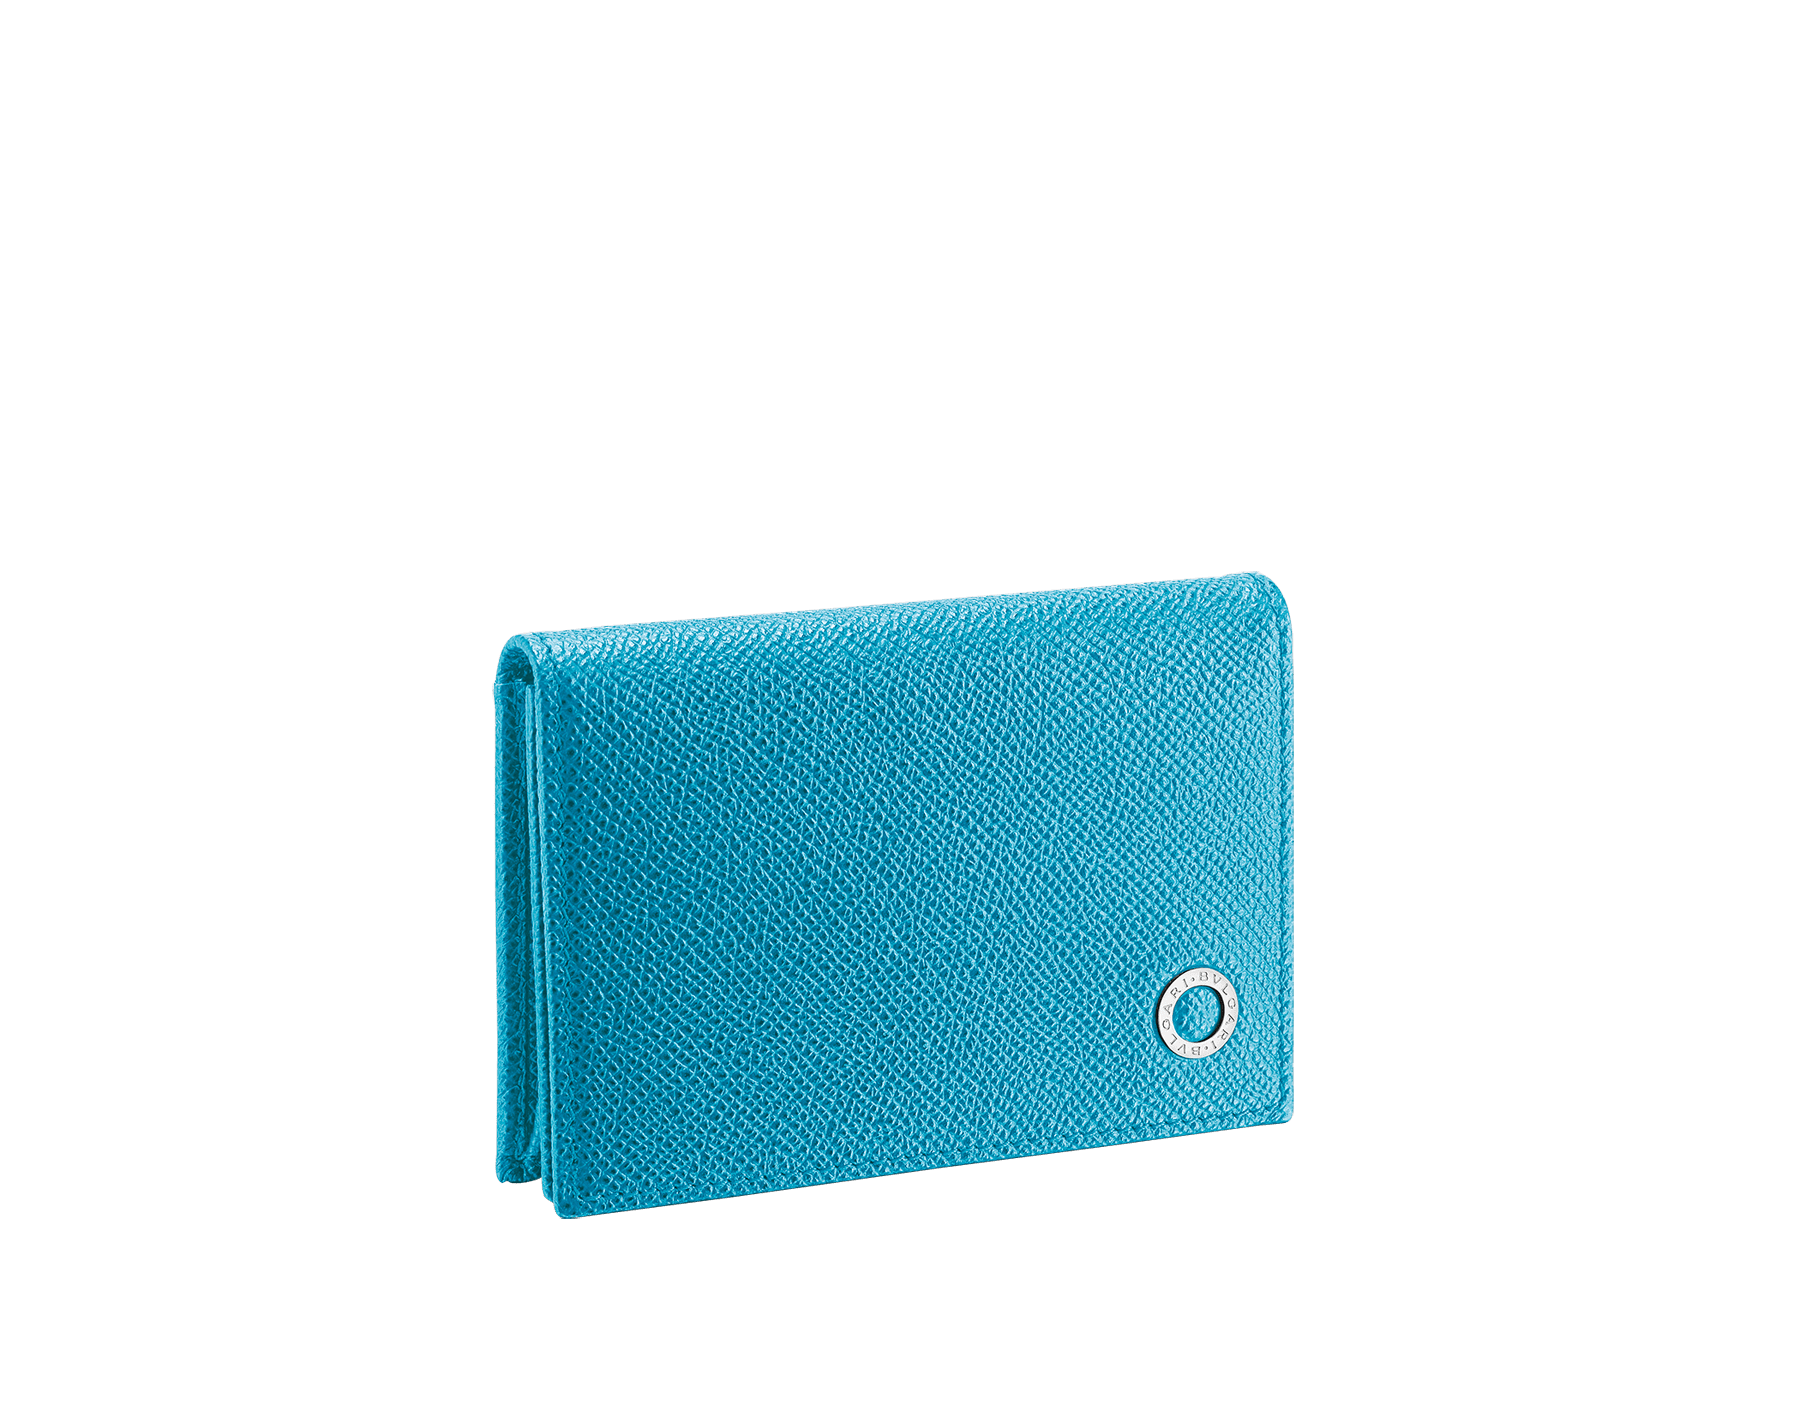 """""""BVLGARI BVLGARI"""" business card holder in capri turquoise and royal sapphire grain calf leather, with brass palladium plated logo décor. BBM-BC-HOLD-SIMPLEa image 1"""